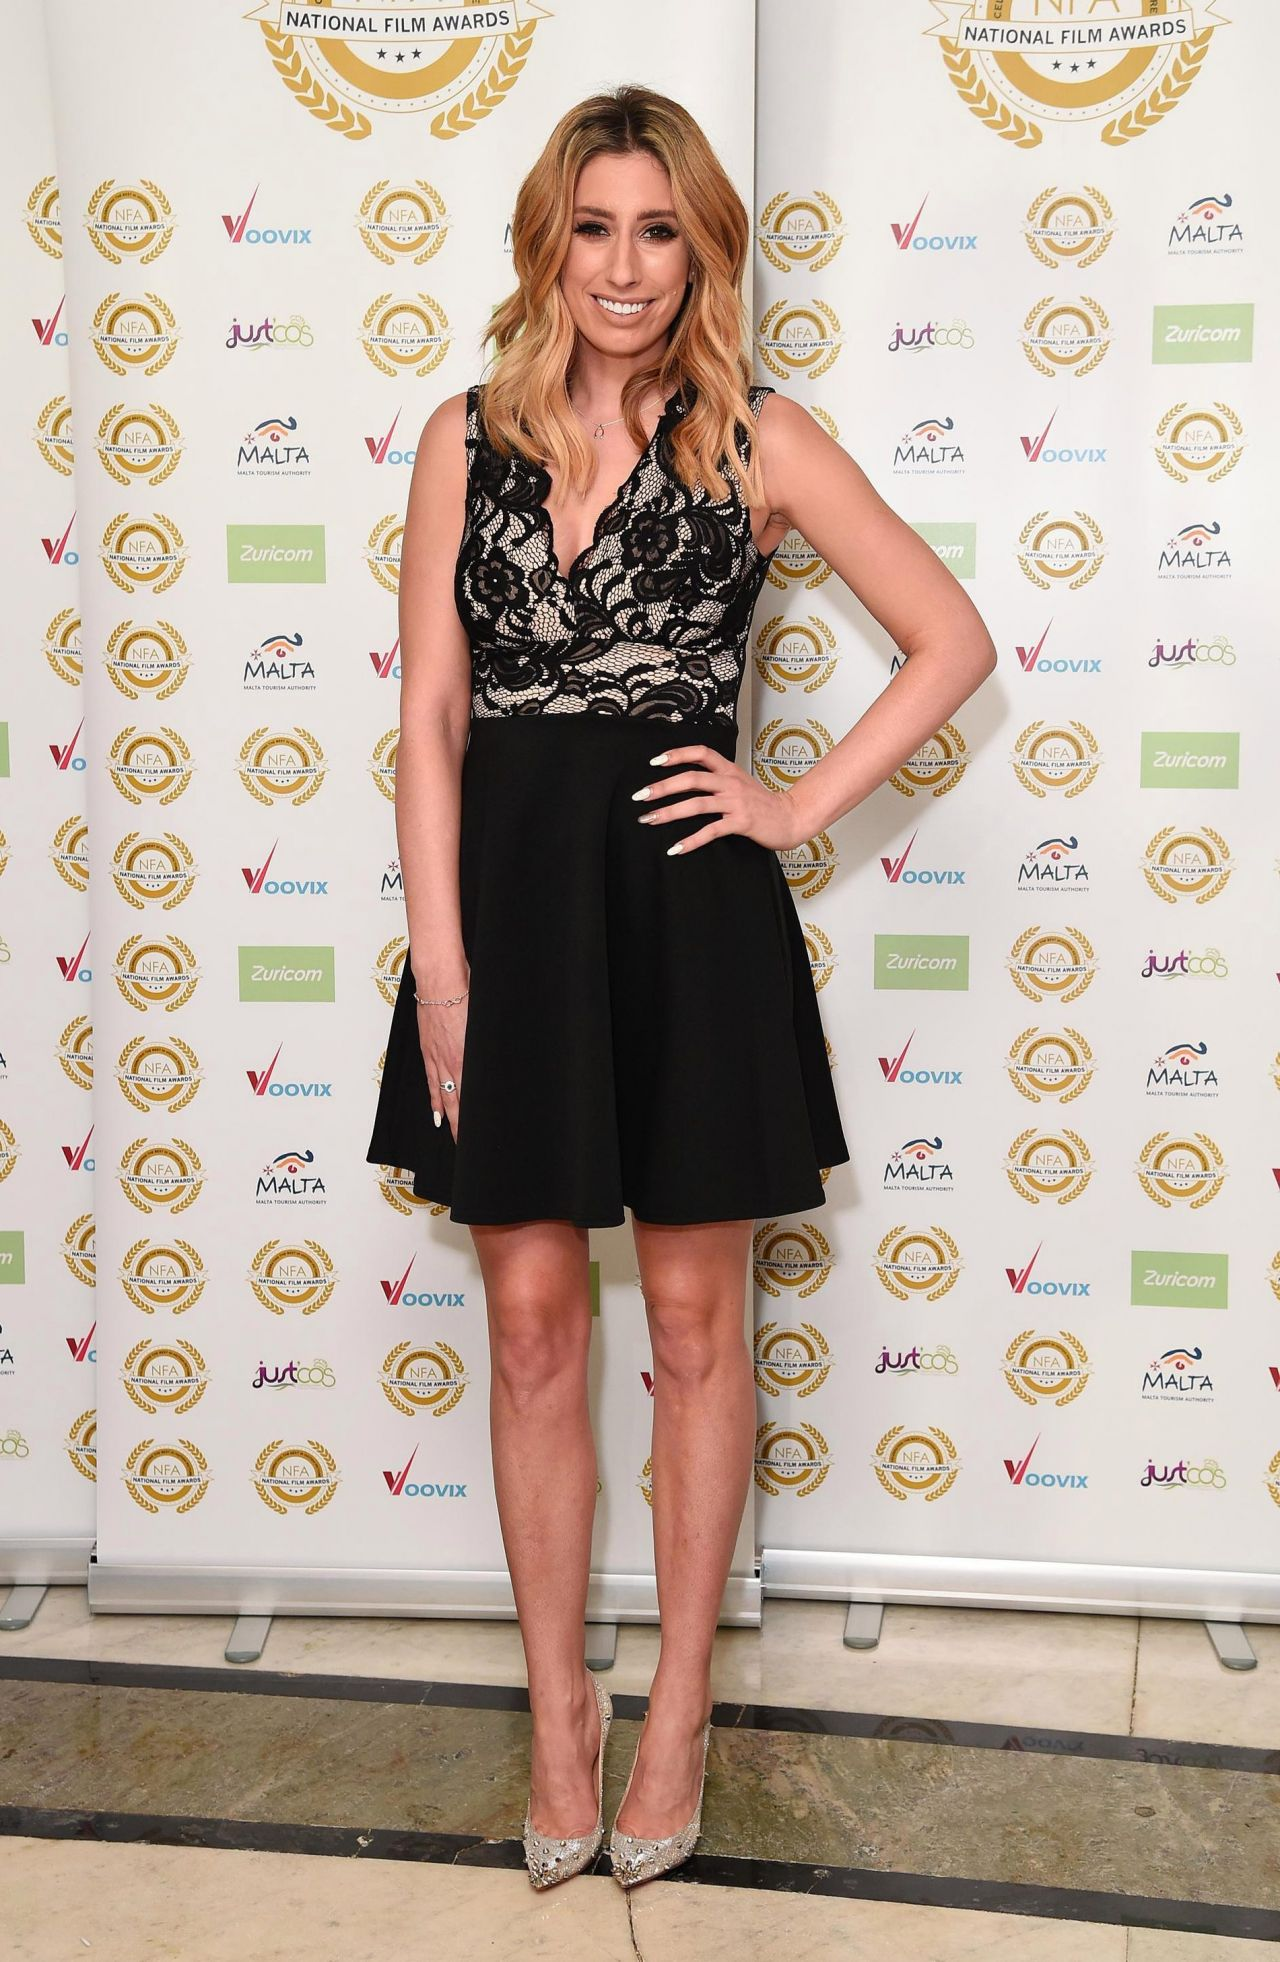 stacey solomon - photo #37